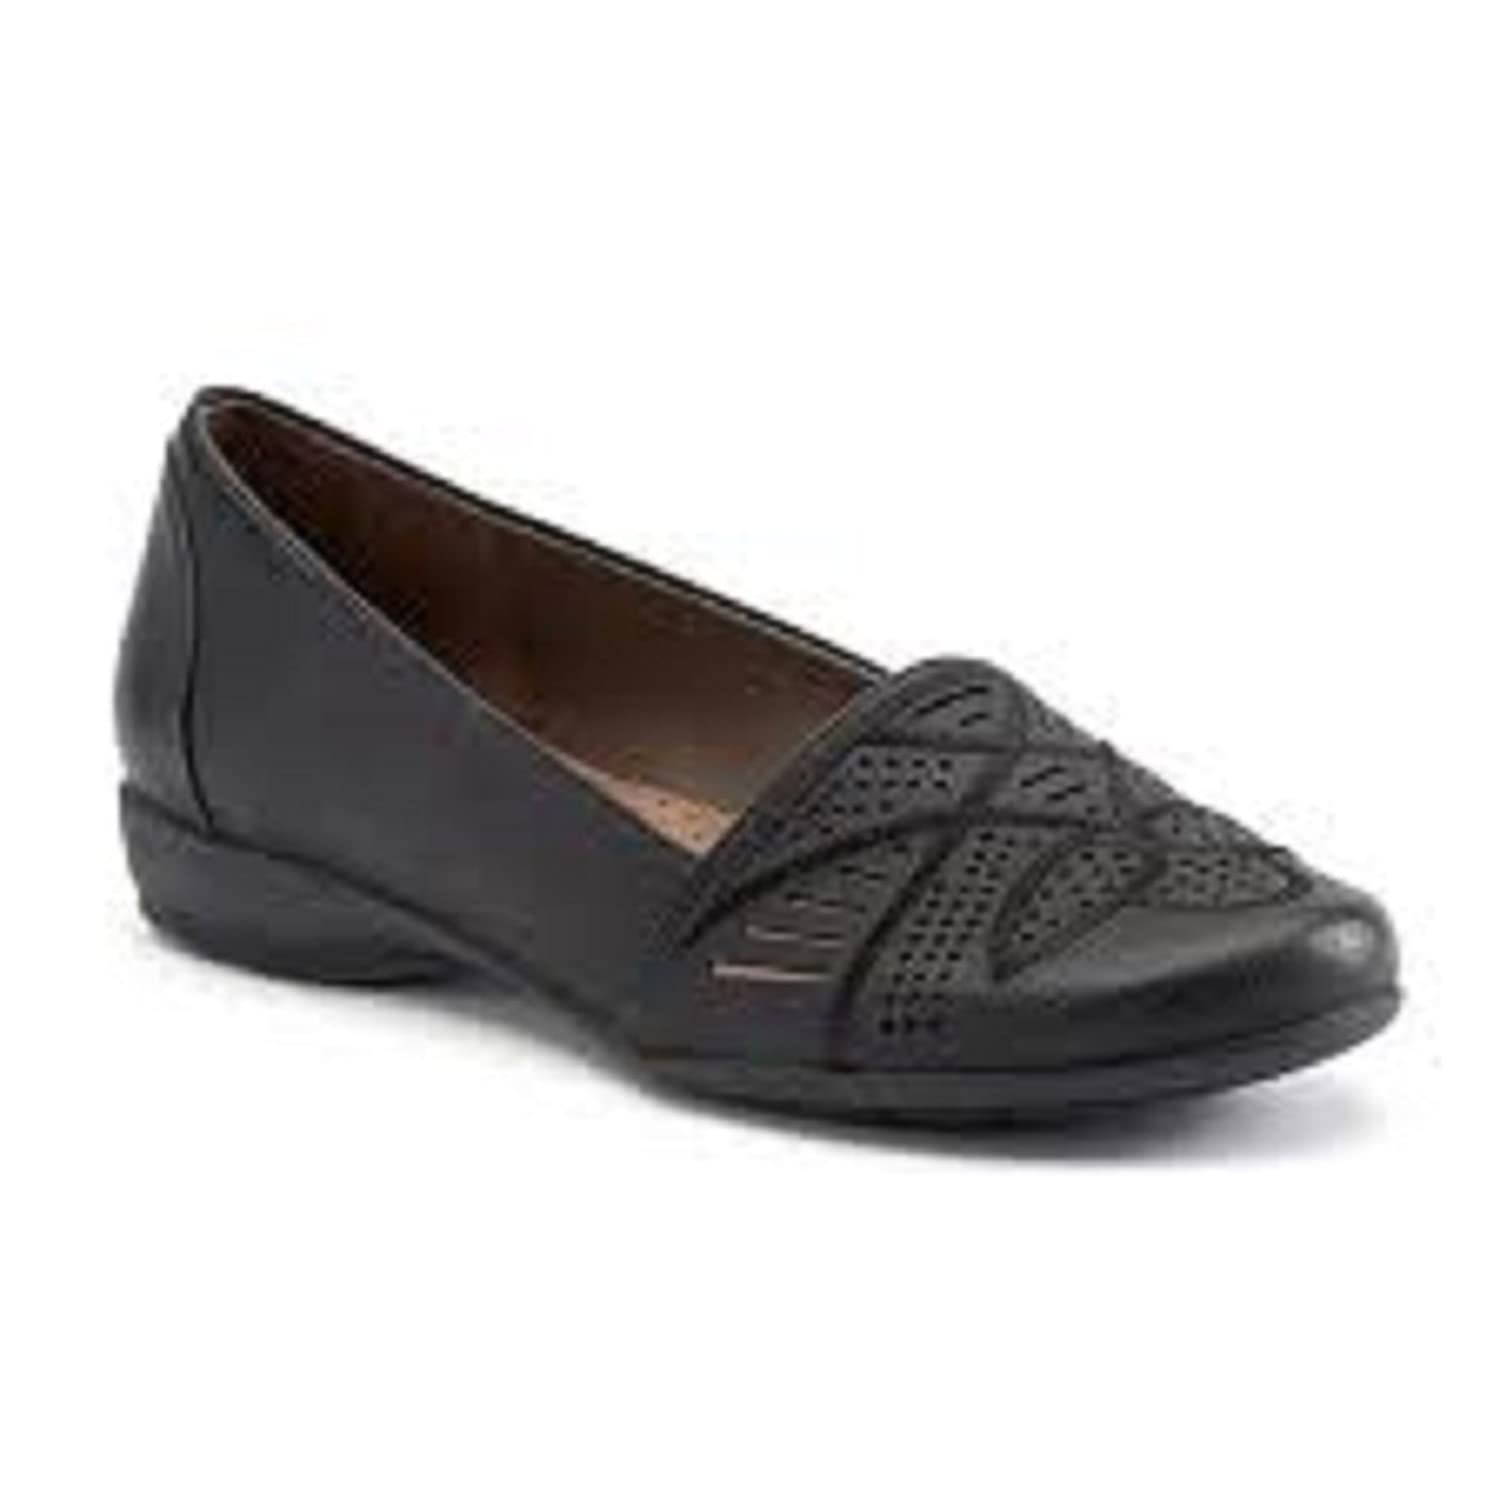 NaturalSoul by naturalizer Greenwich Women's Cutout Loafers size 9.5